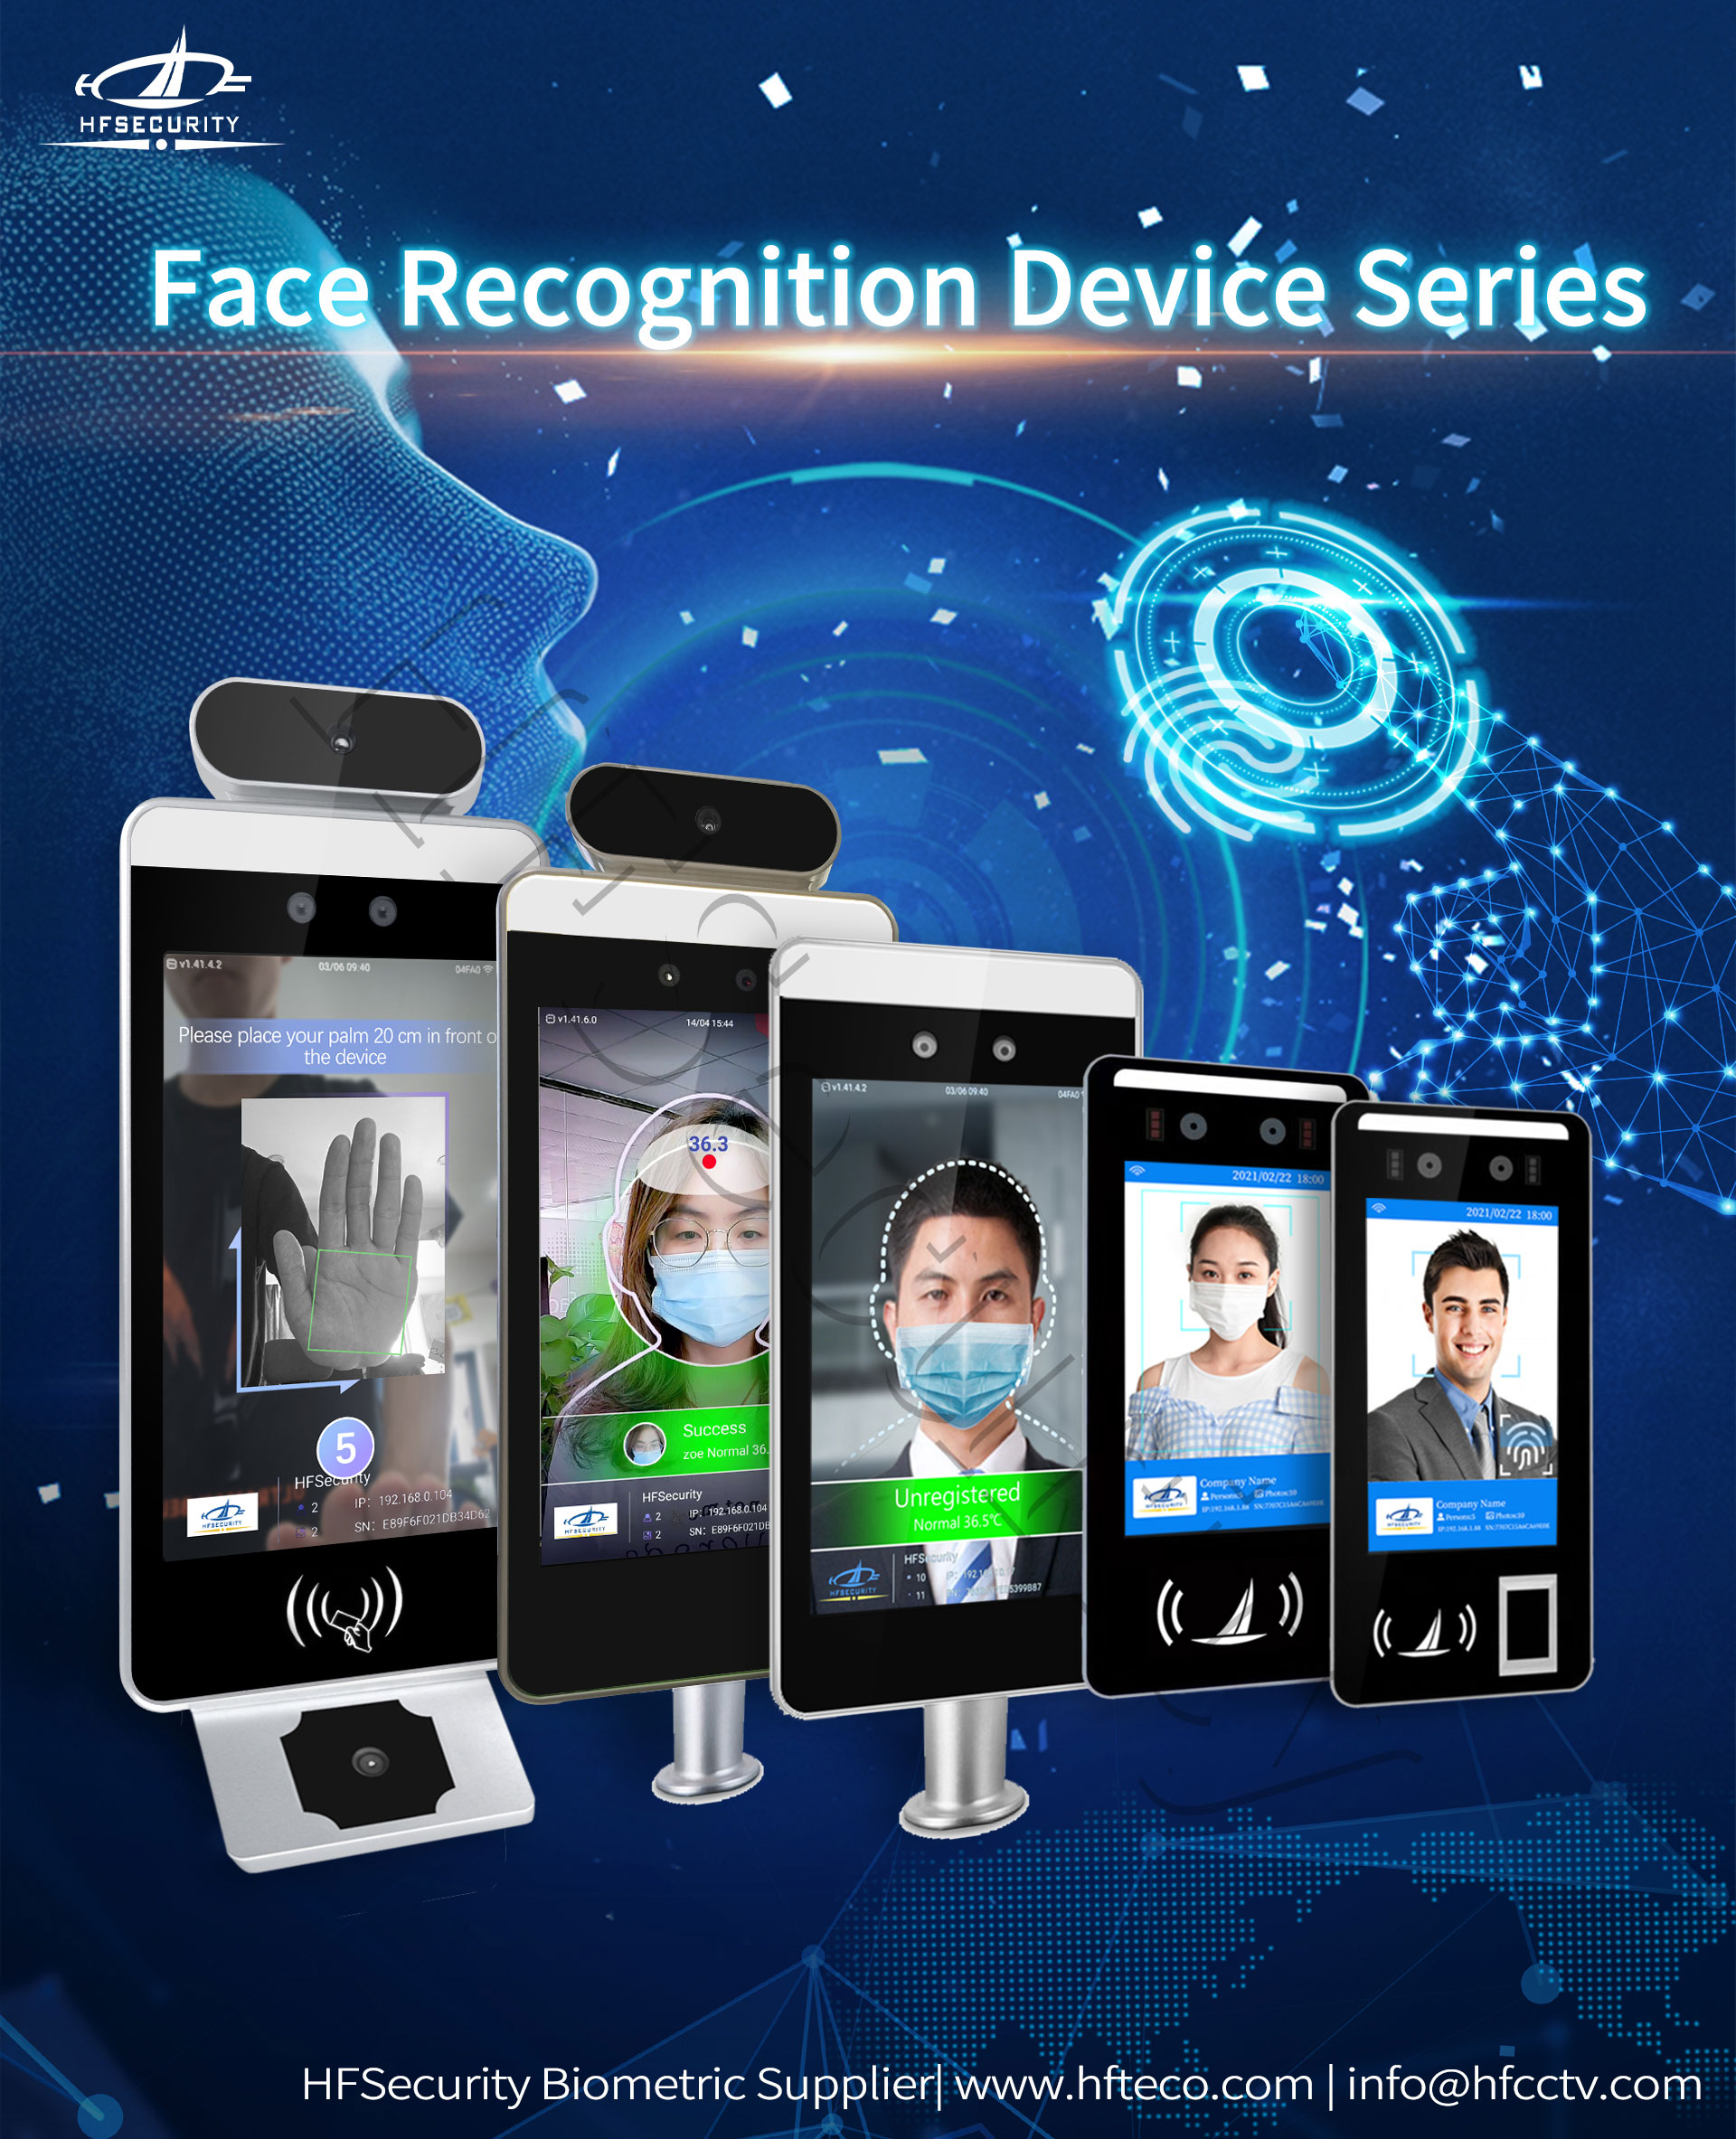 biometric access control face recognition